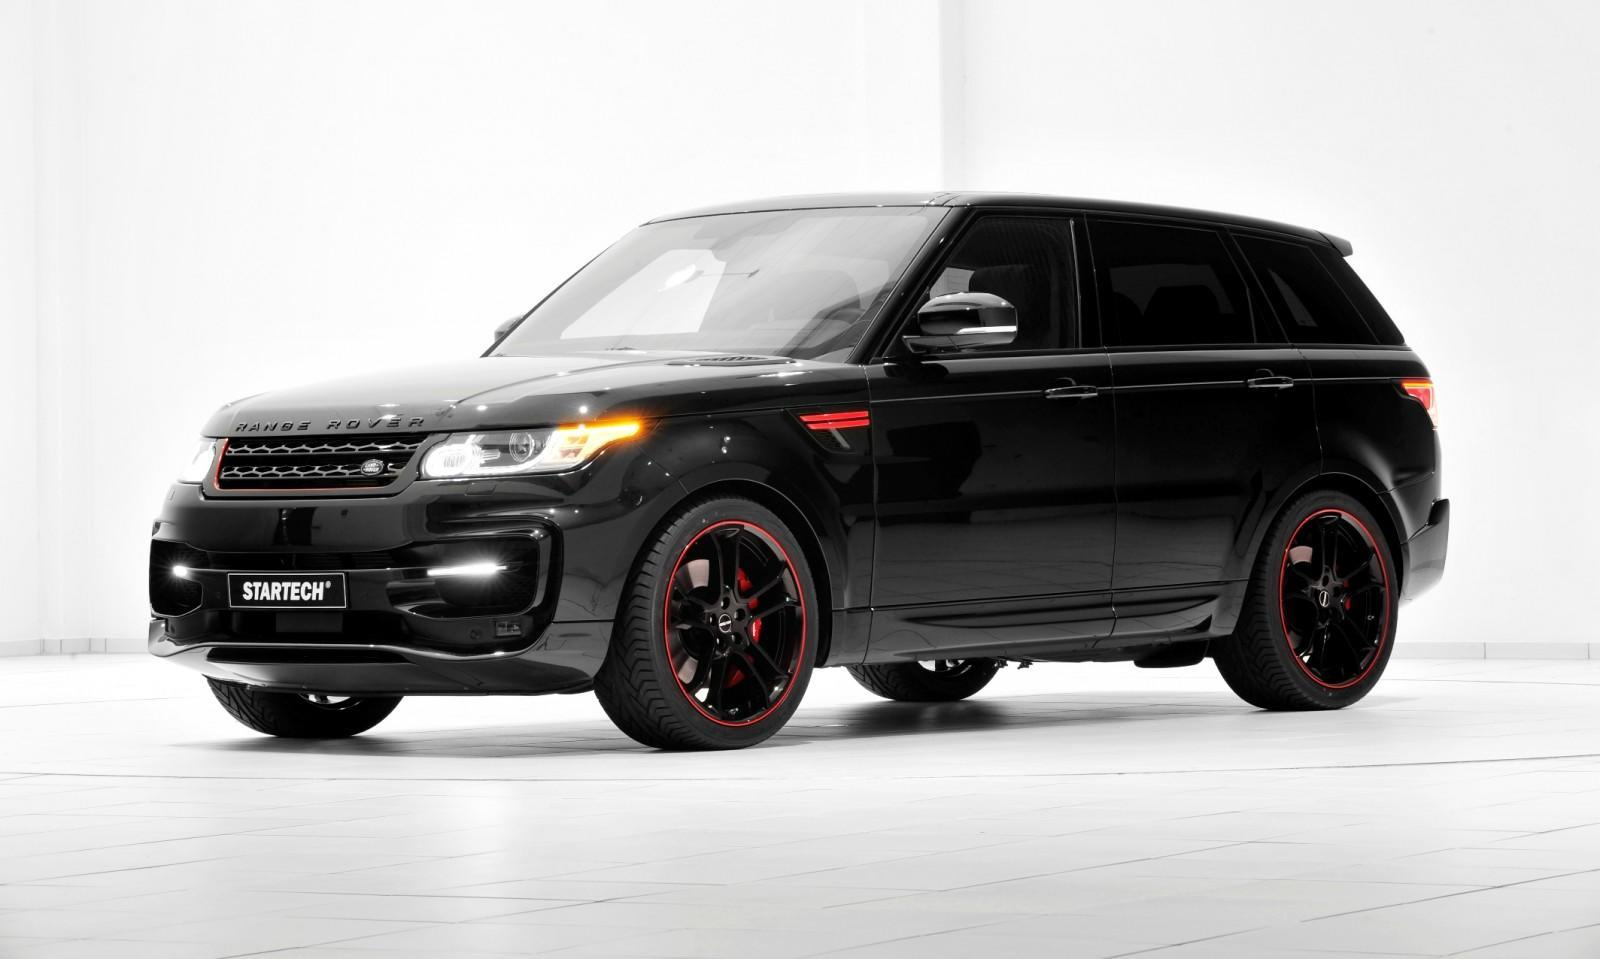 2014 Range Rover Sport By StarTech Is Gorgeous Even Without the Widebody 1